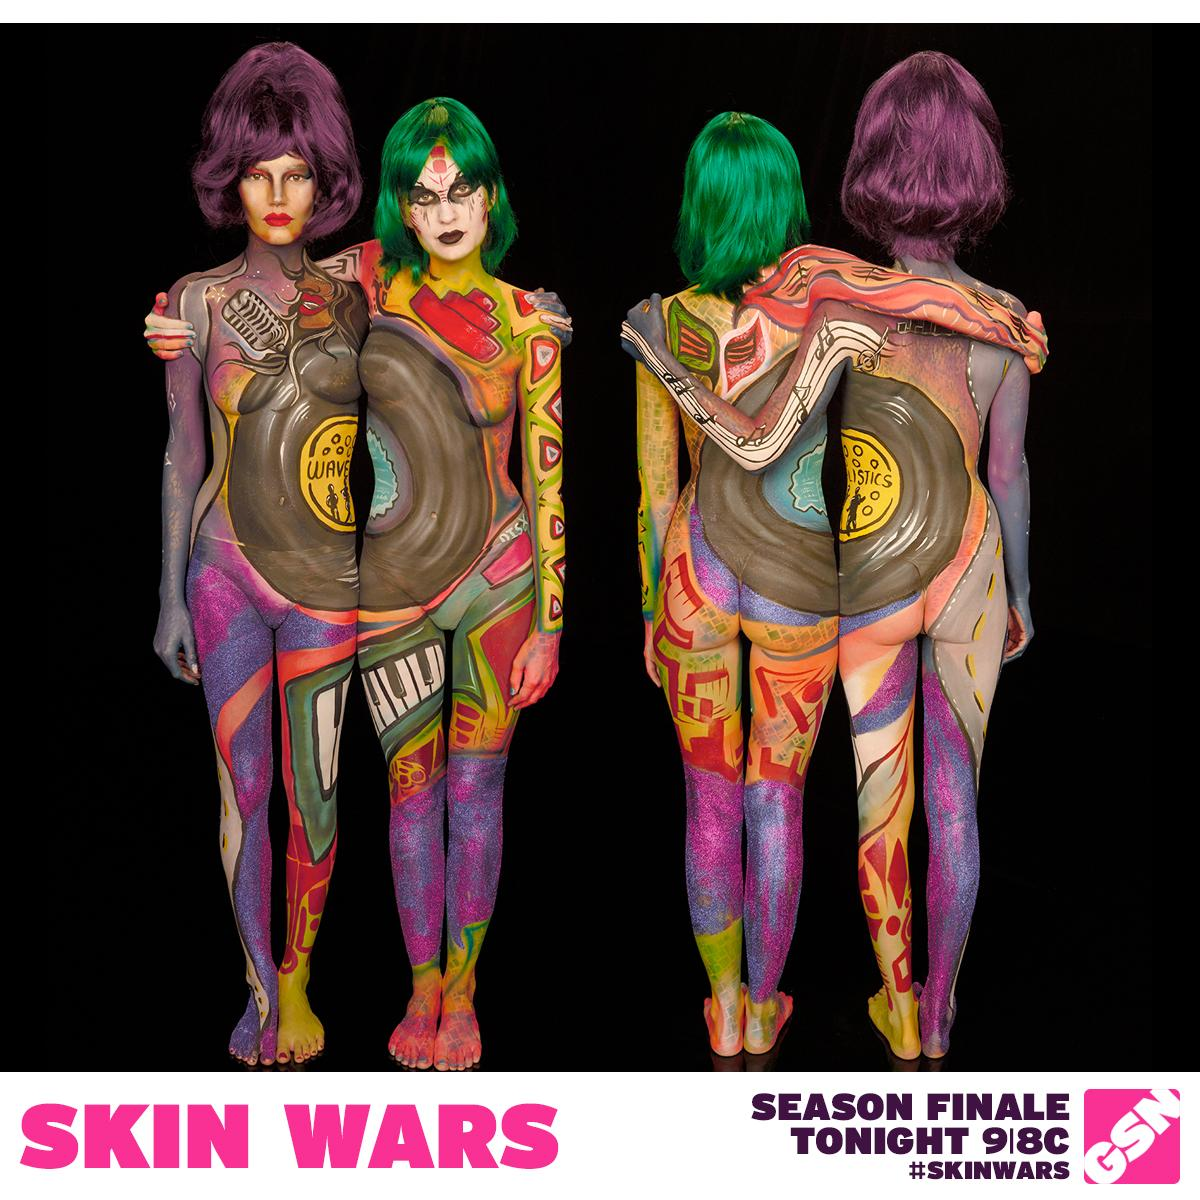 skin wars on twitter skinwars 100 000 finale is here it 39 s a multi body paint off tune in. Black Bedroom Furniture Sets. Home Design Ideas